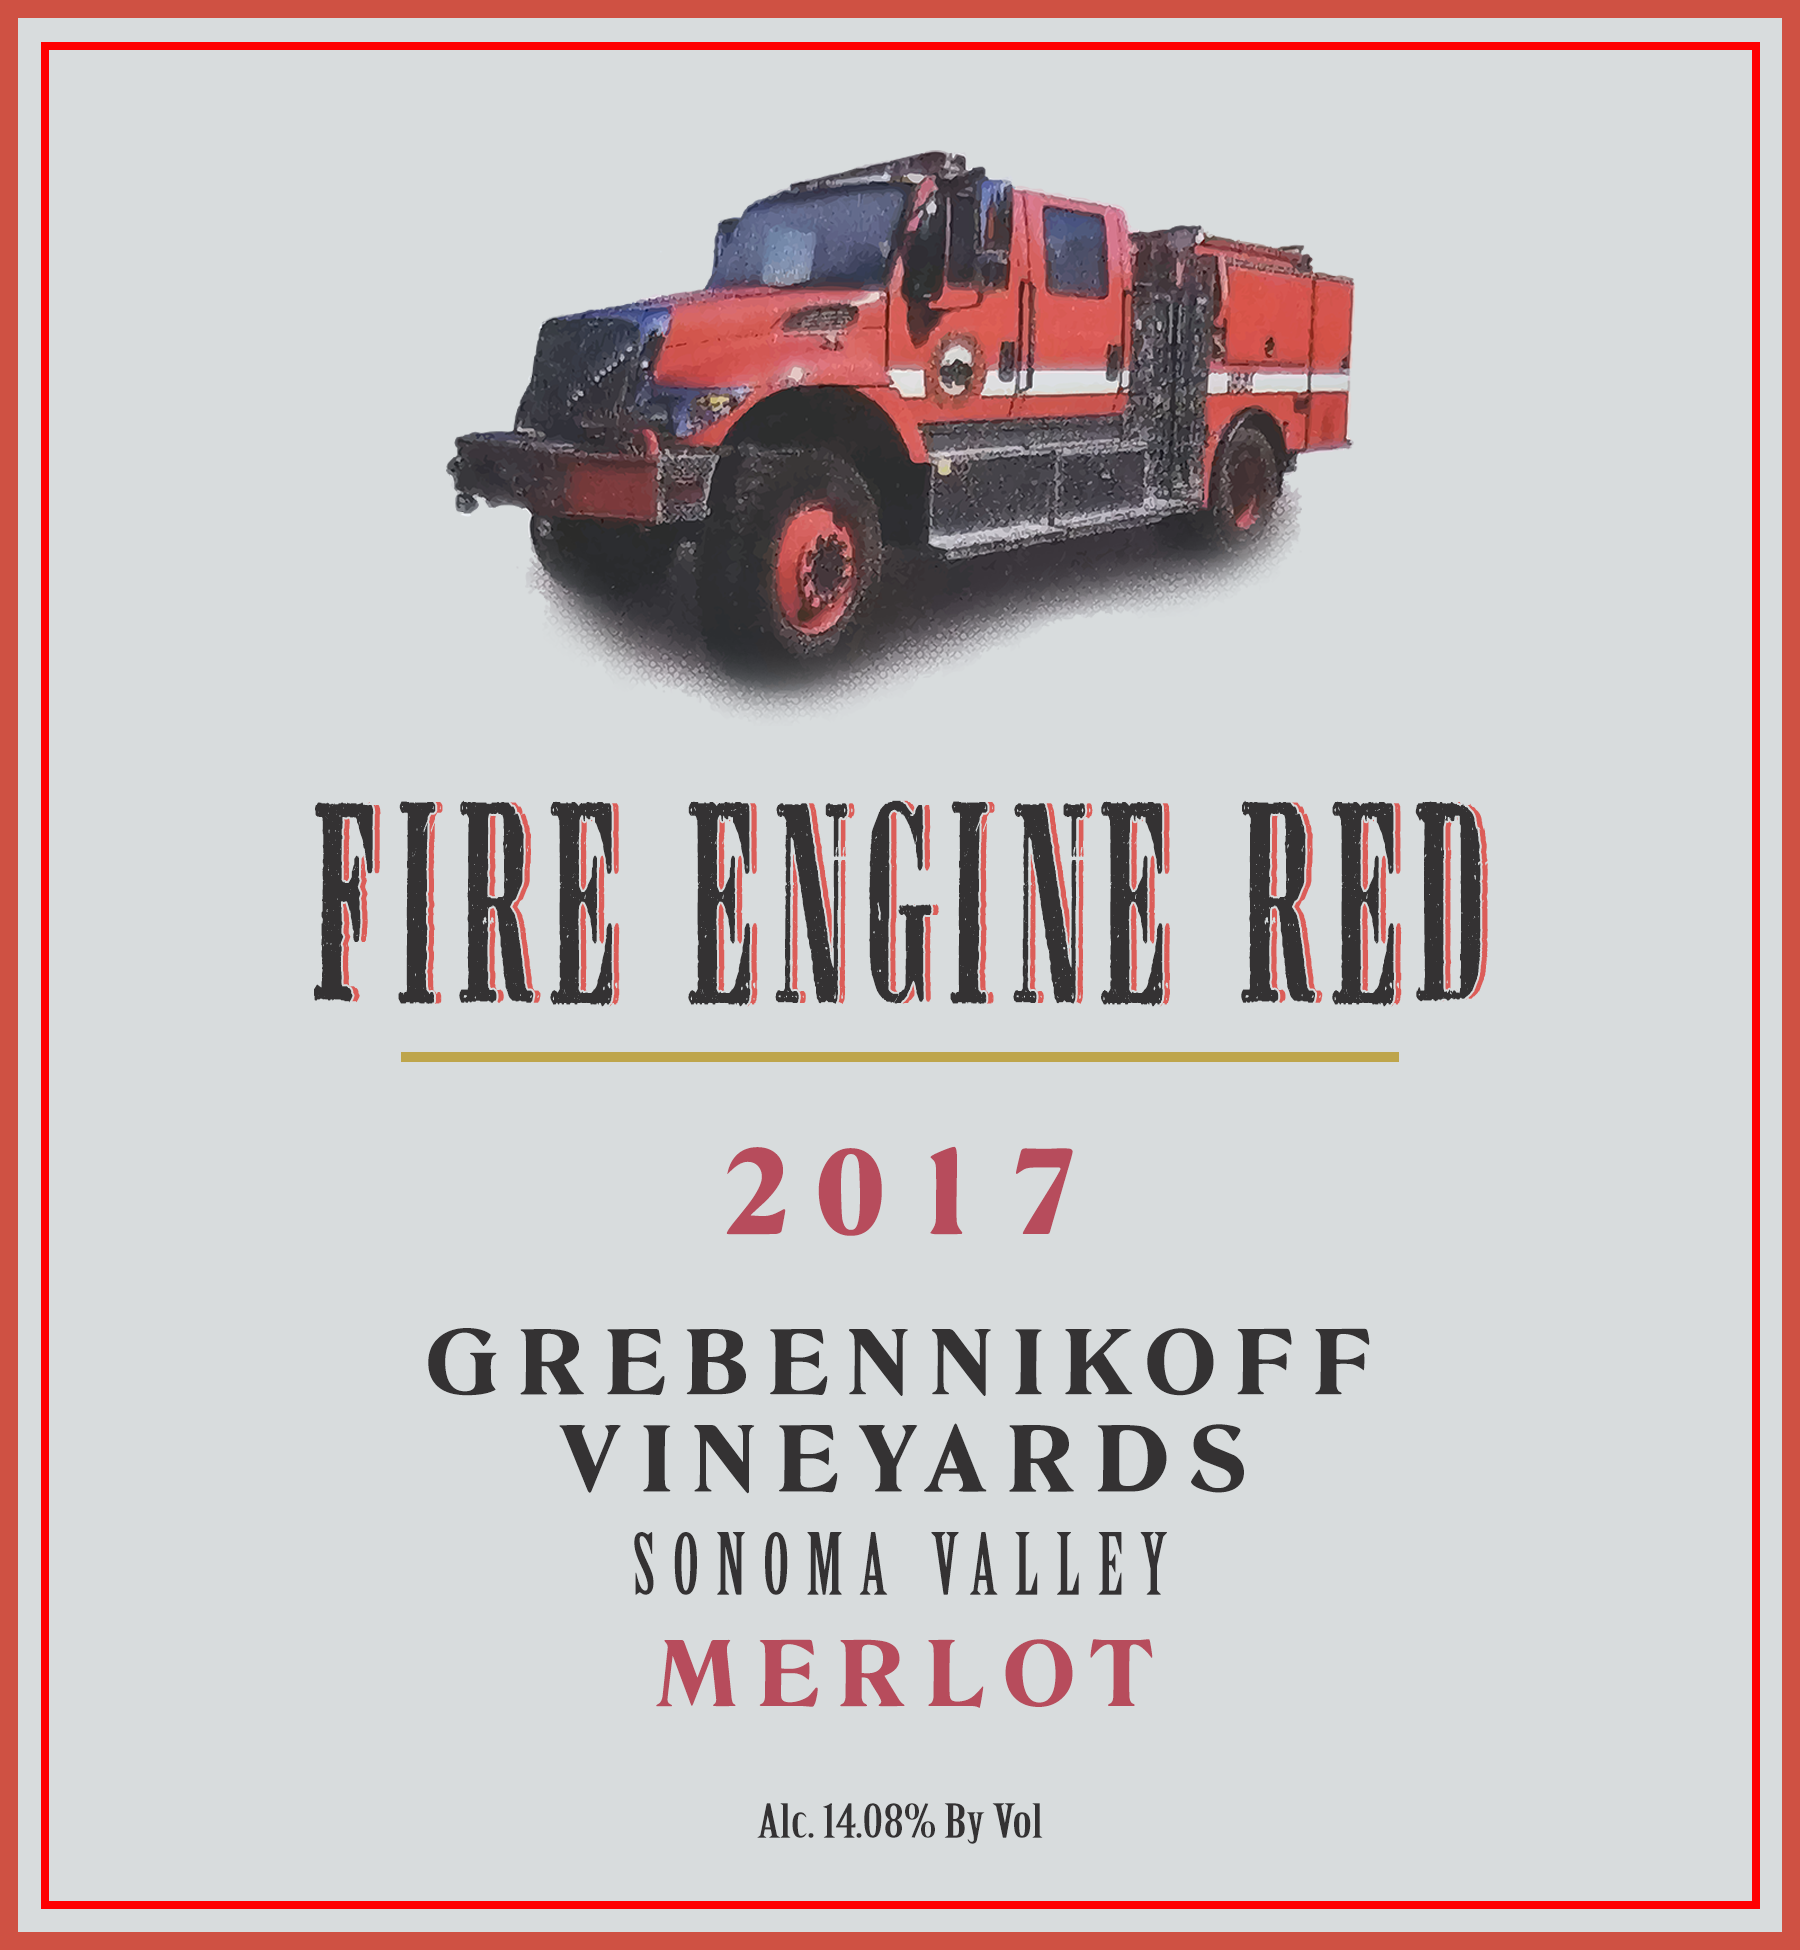 2017 Fire Engine Red